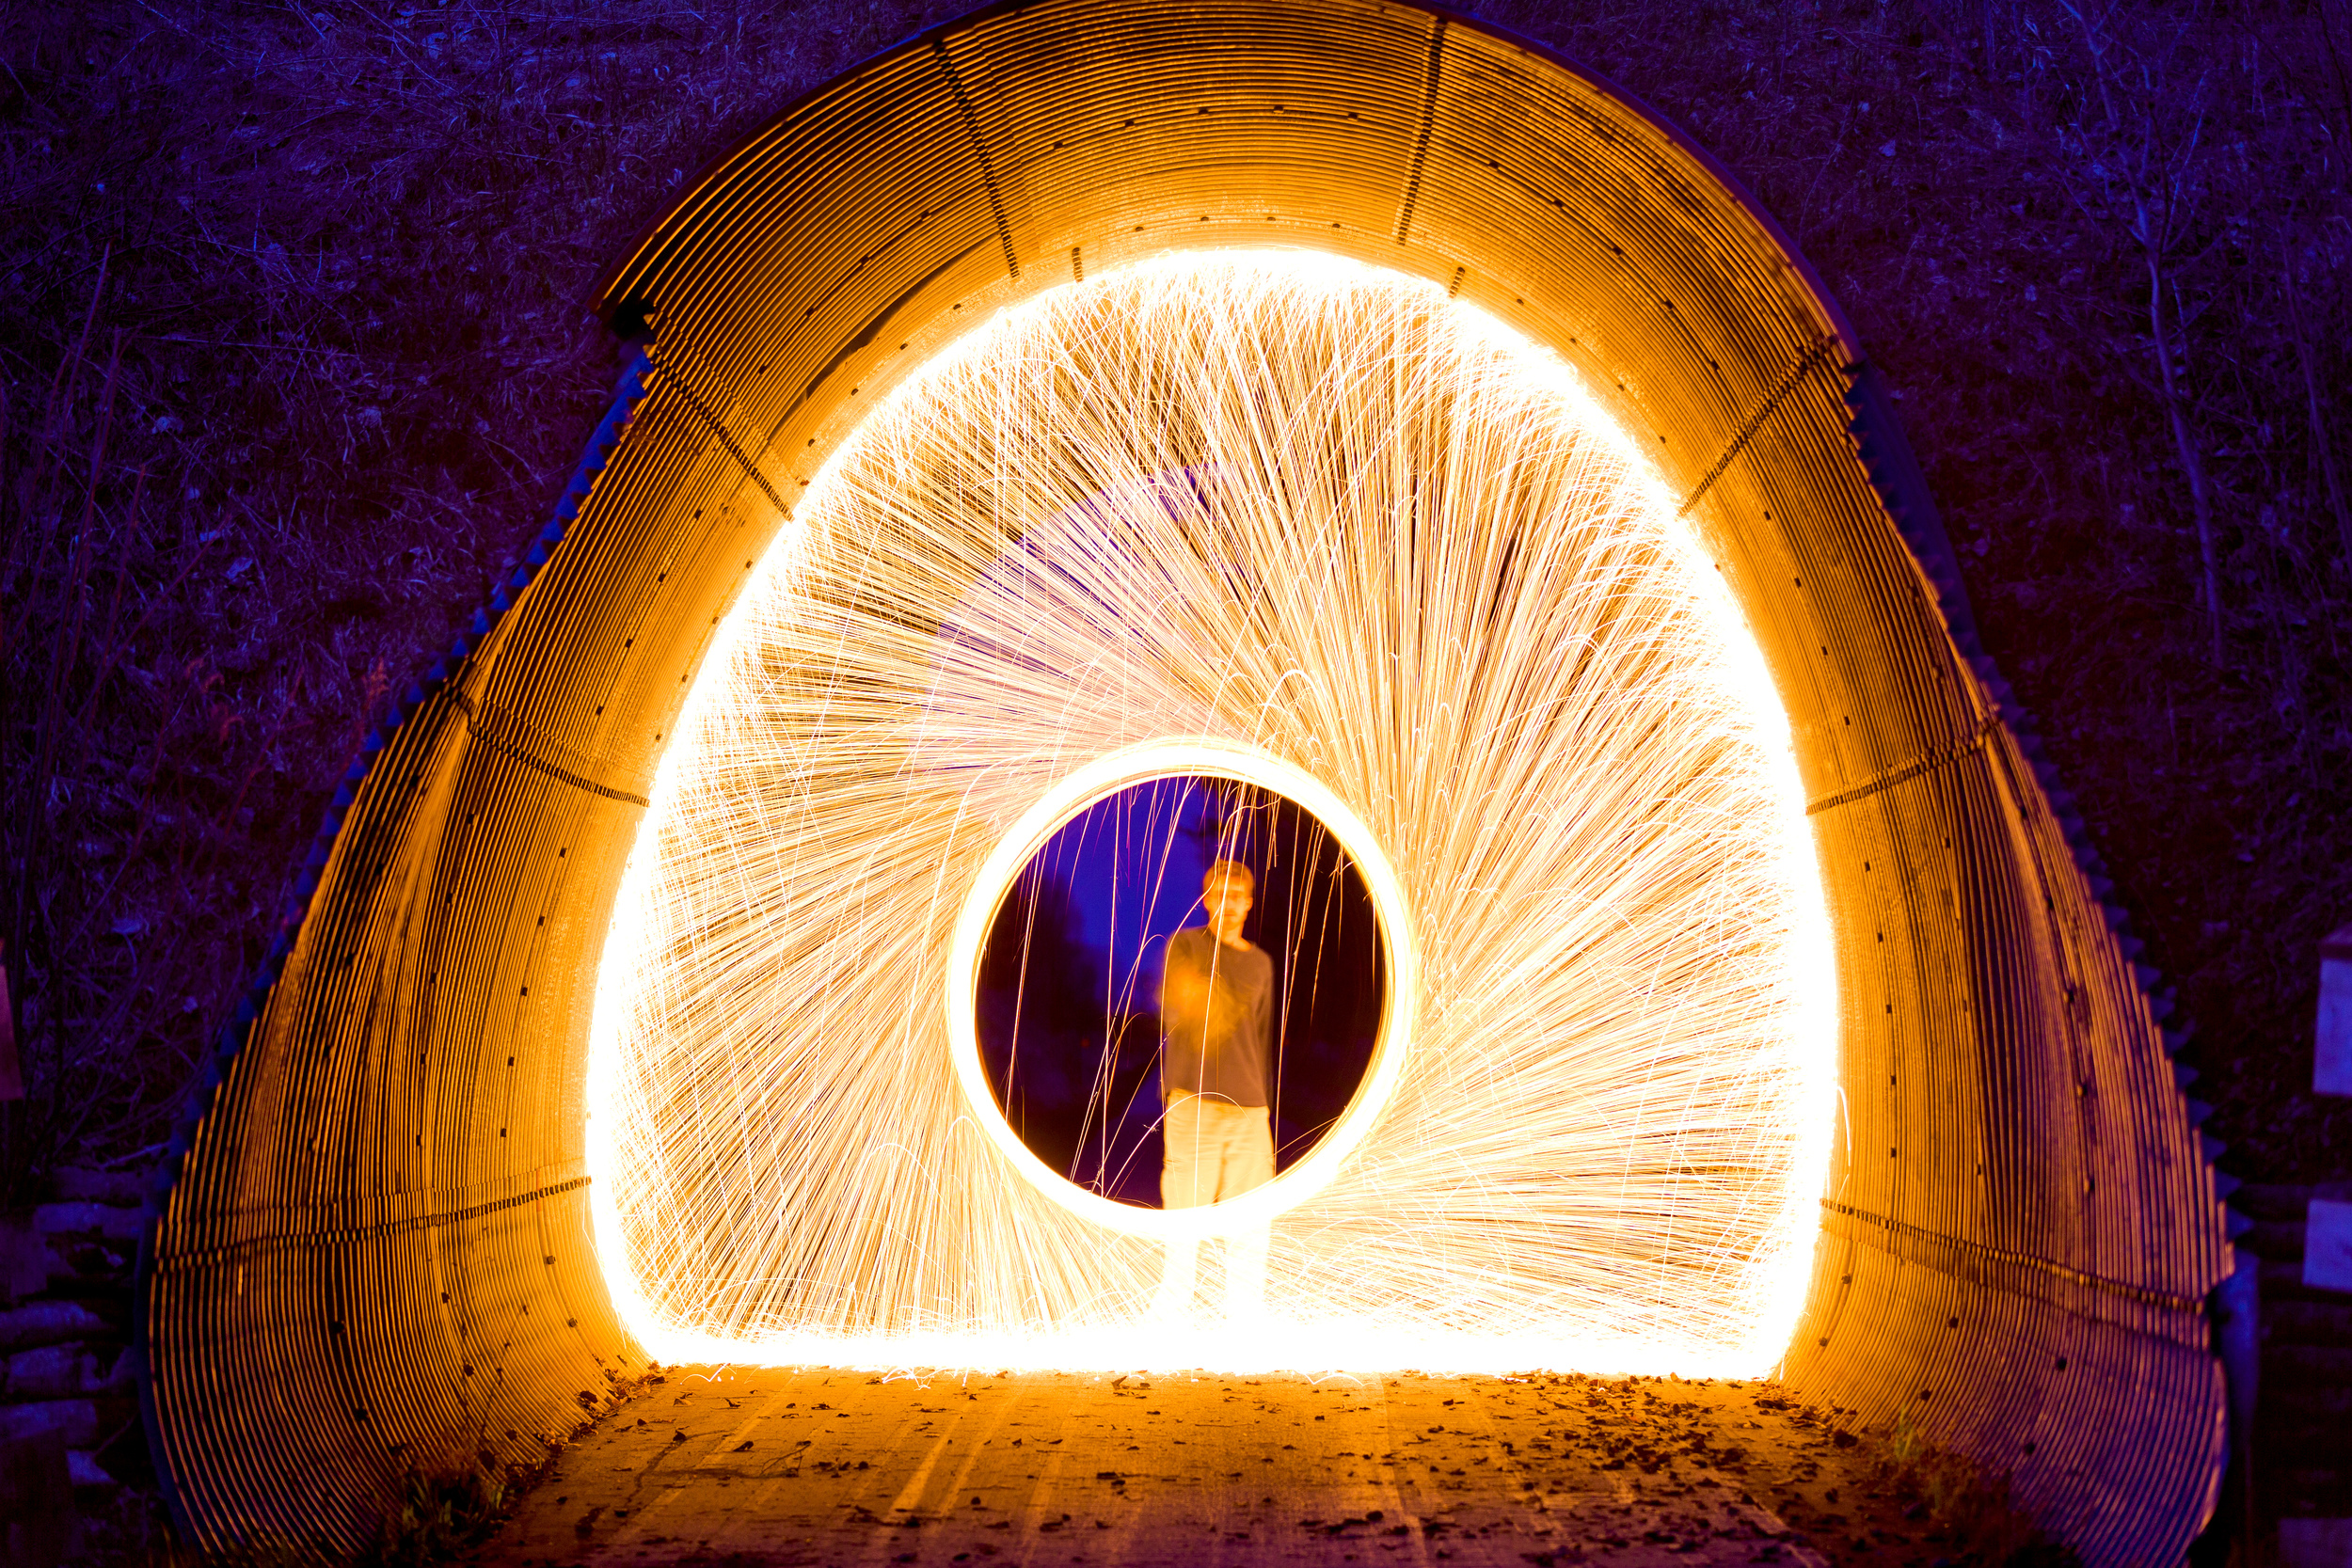 LIGHT SHOW: This is a really fun project if done correctly and safely. Simply use some steel wool inside of a whisk and find a rope or leash to swing it around after setting the wool on fire. Remember, safety is first with this kind of project. Be cautious and have fun.